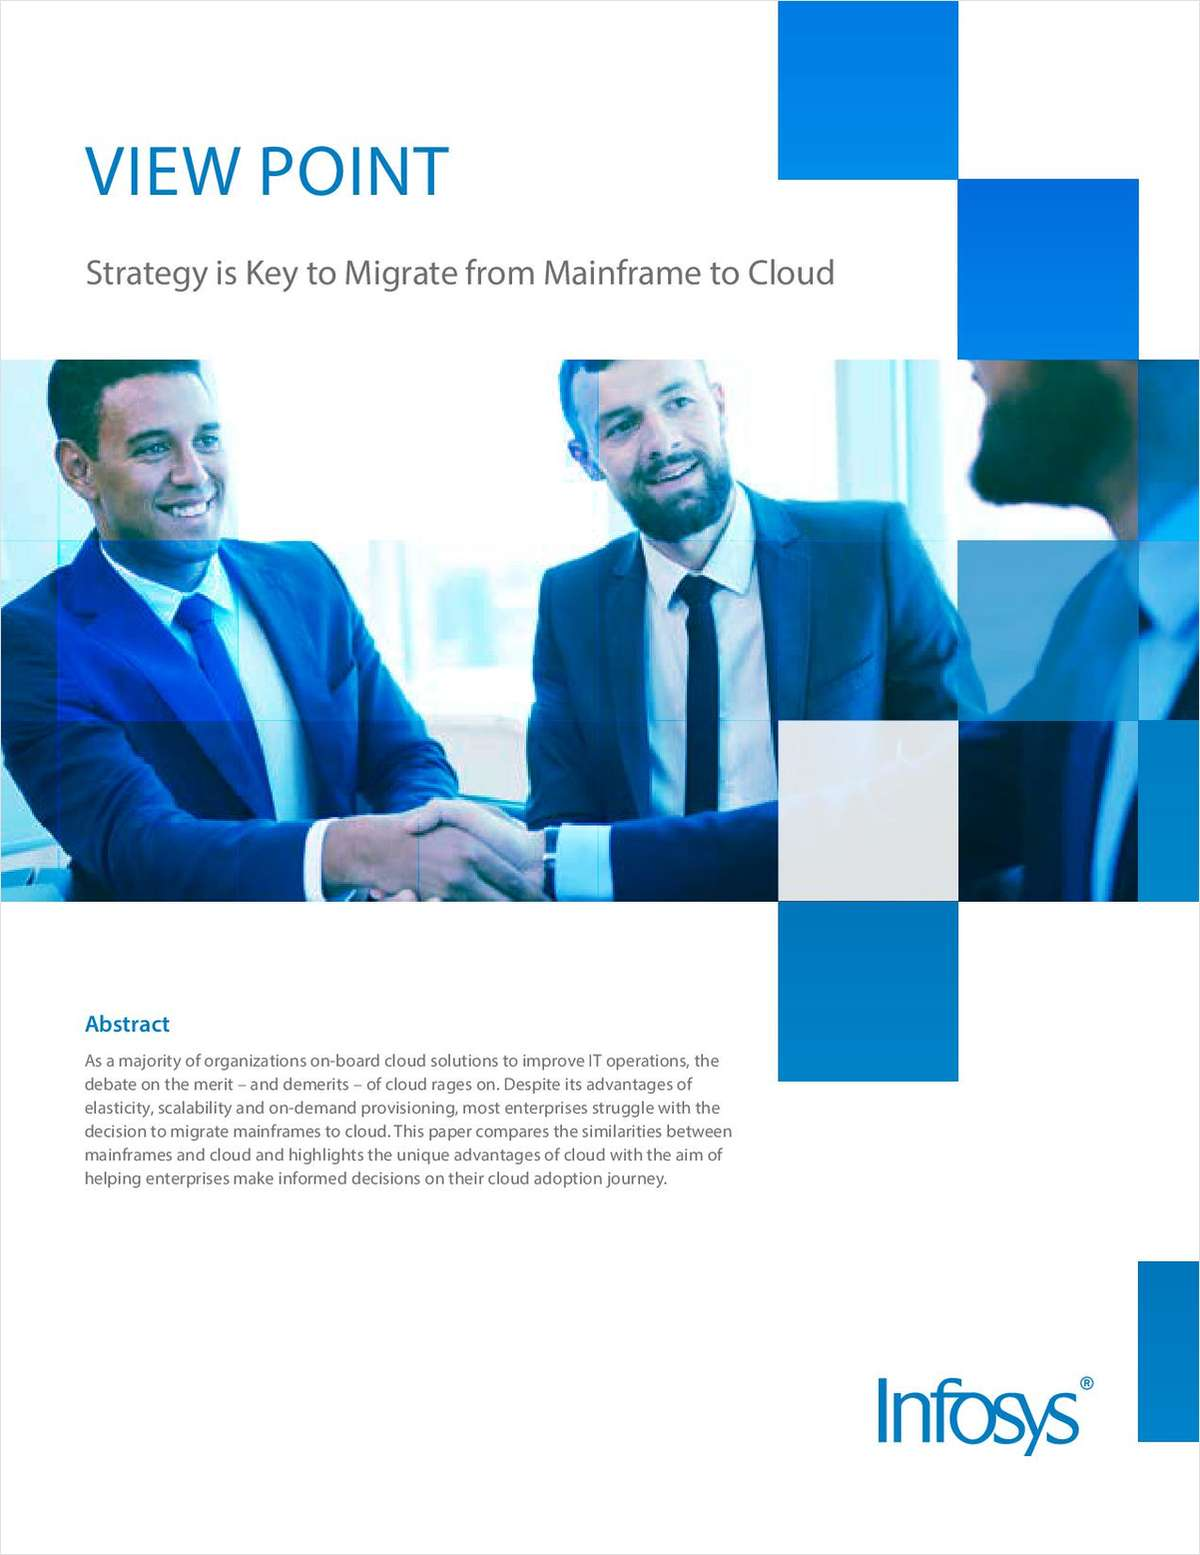 Strategy is Key to Migrate from Mainframe to Cloud